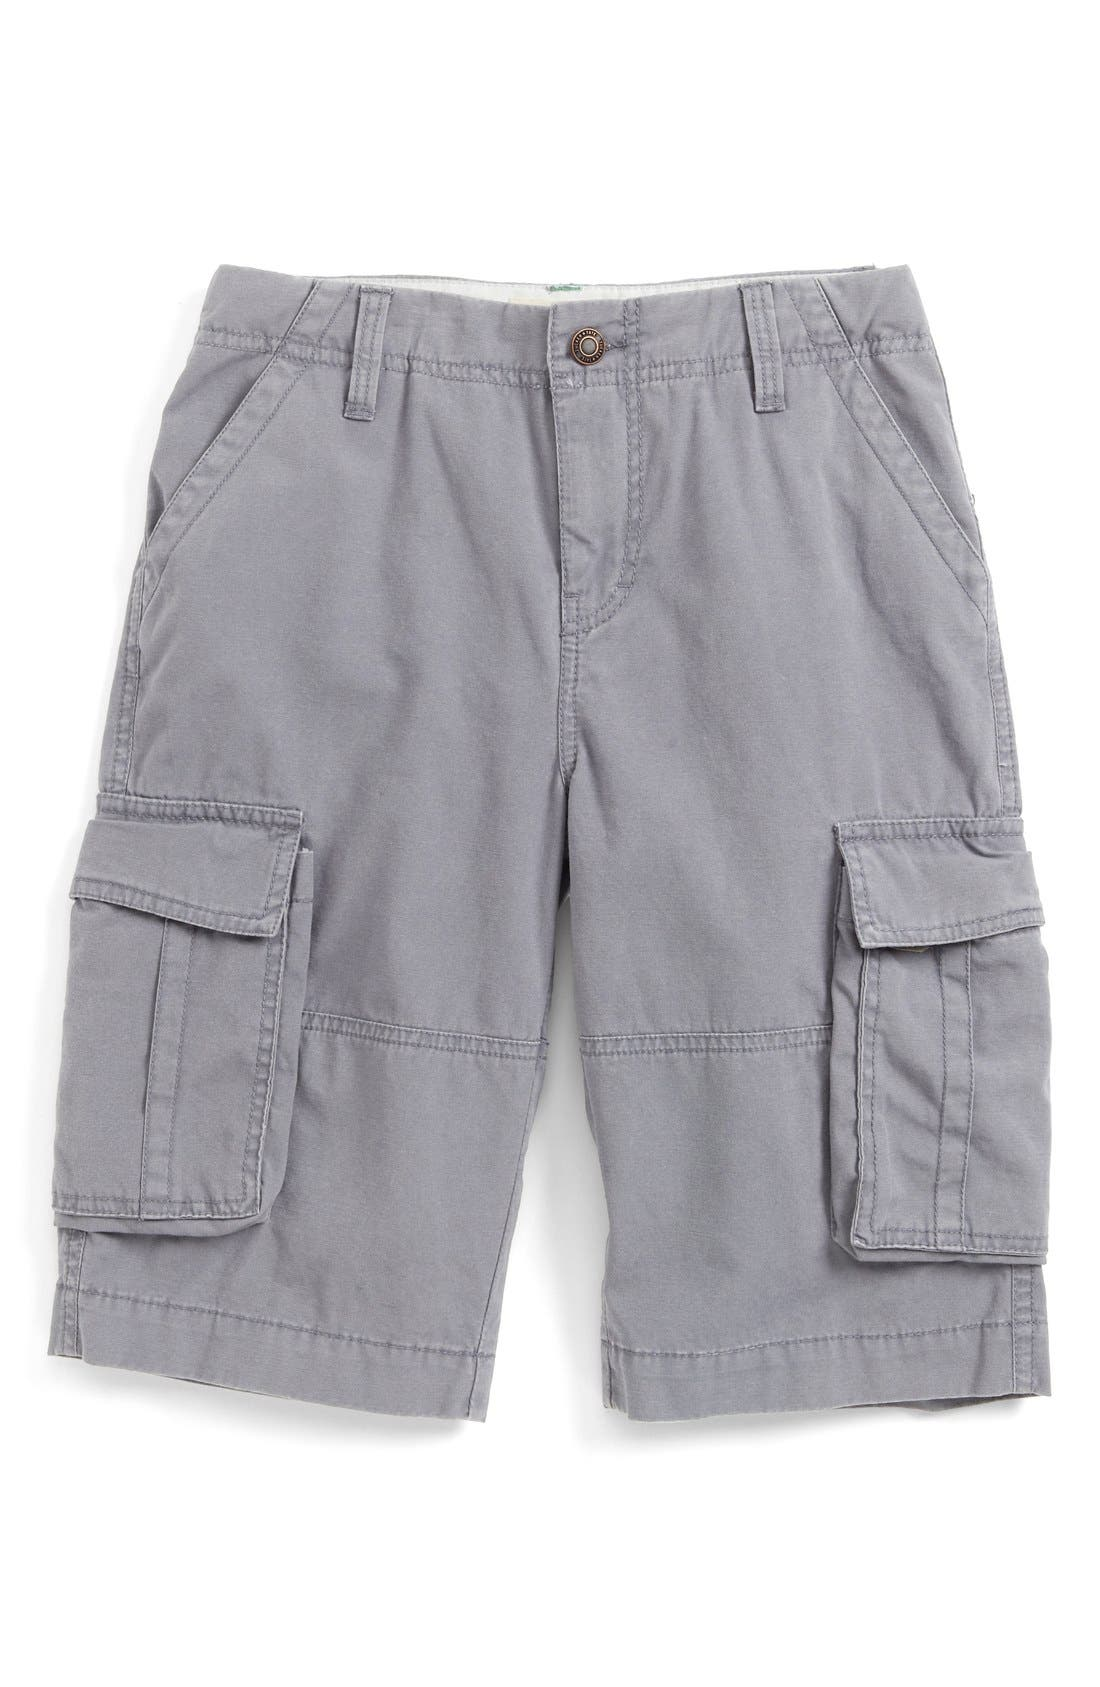 Alternate Image 1 Selected - Tucker + Tate Cargo Shorts (Little Boys)